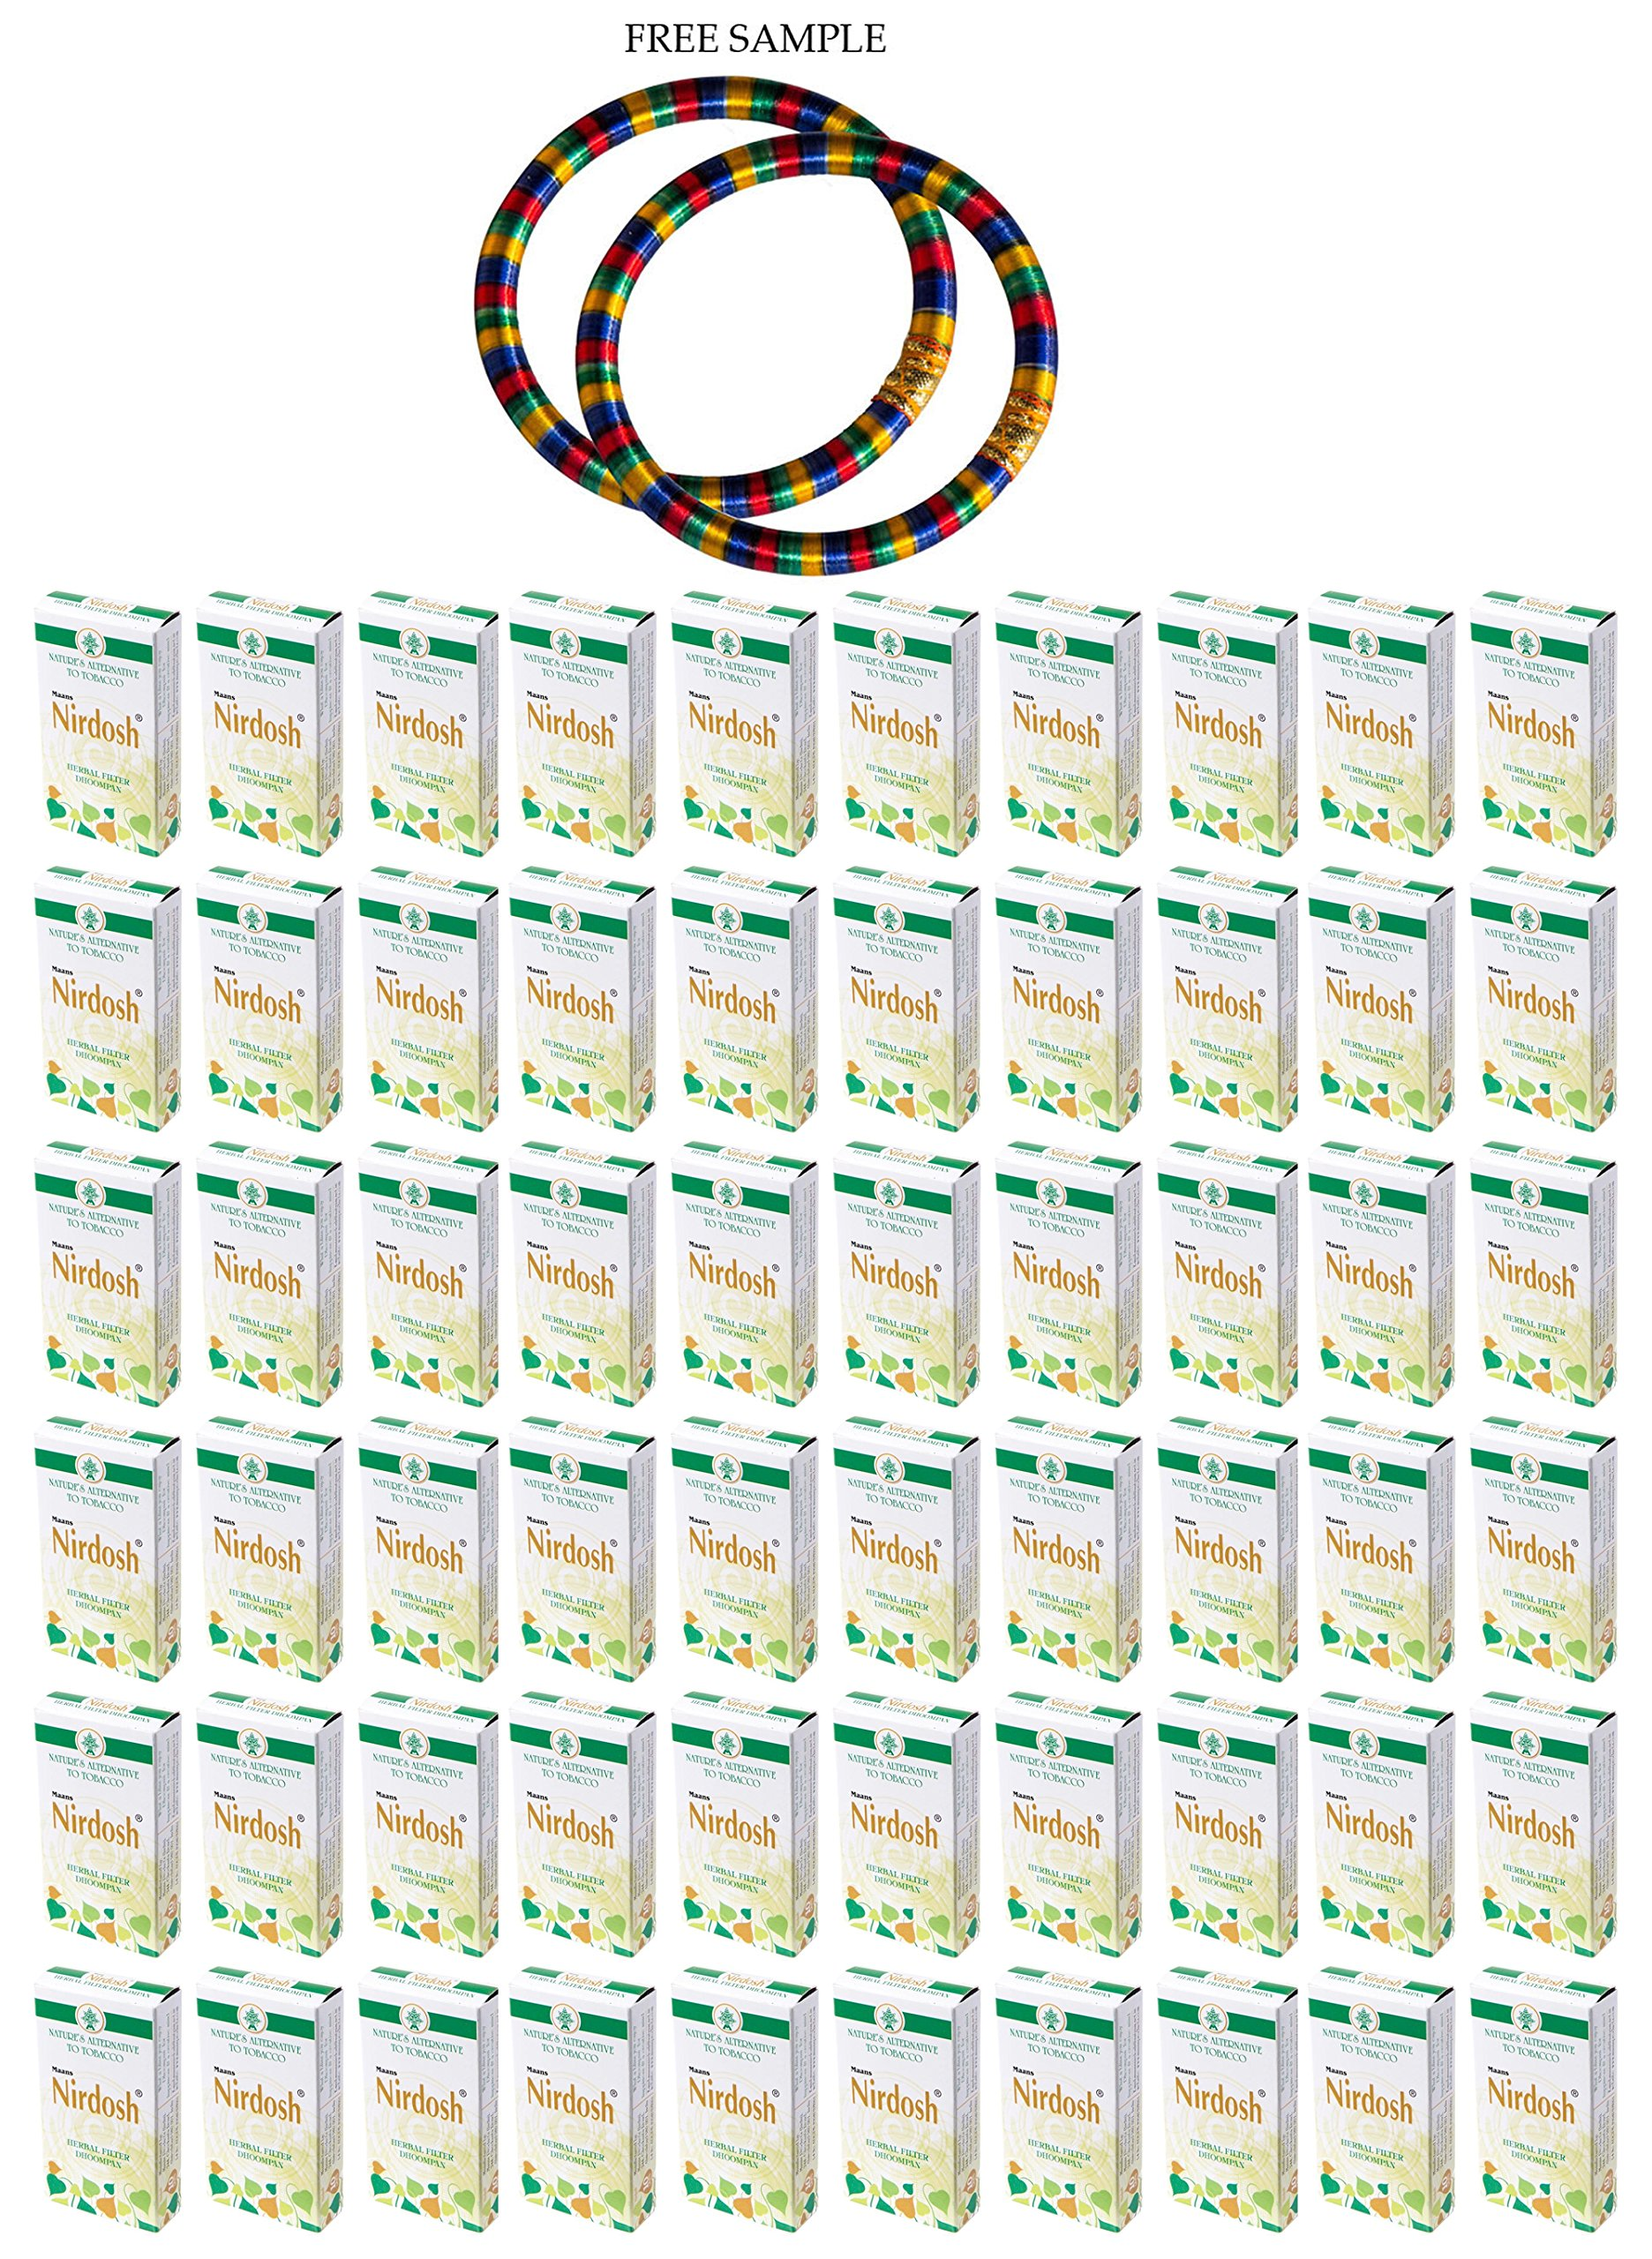 Nirdosh Herbal Cigarettes - Pack of 60 - ''Free Expedited Shipping via DHL Express'' - Delivery in 3-7 days - with Free Product Sample